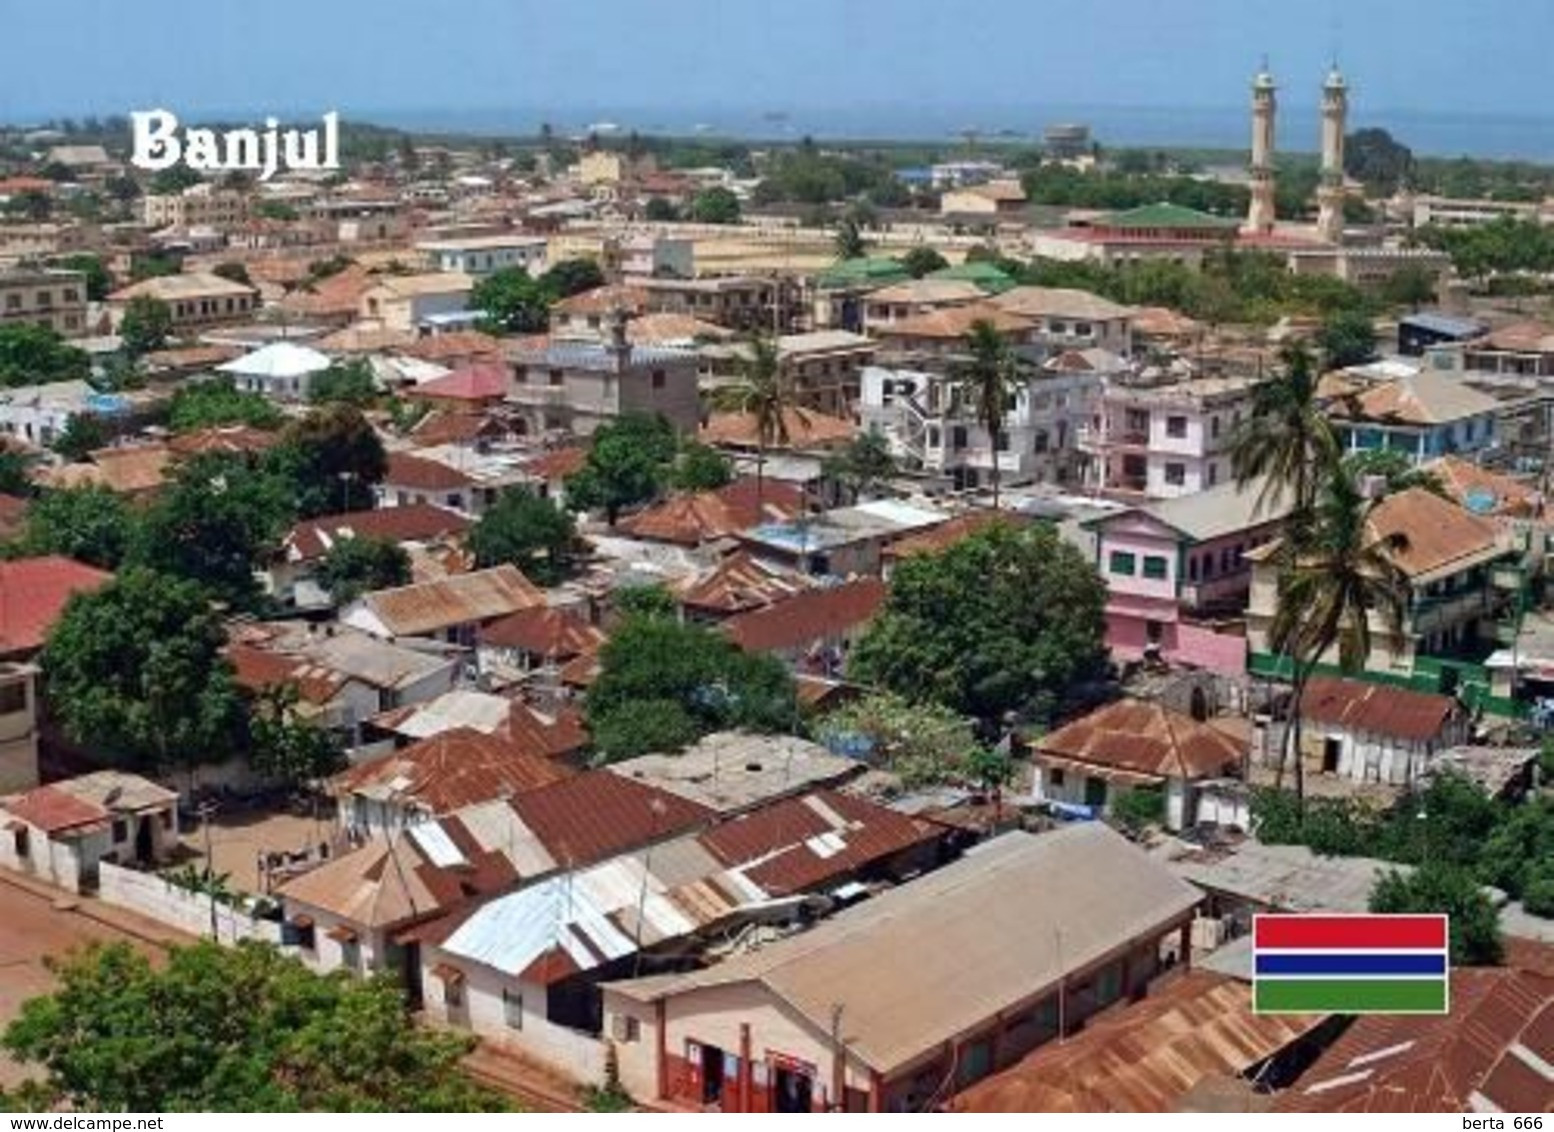 Gambia Banjul Overview New Postcard - Gambia